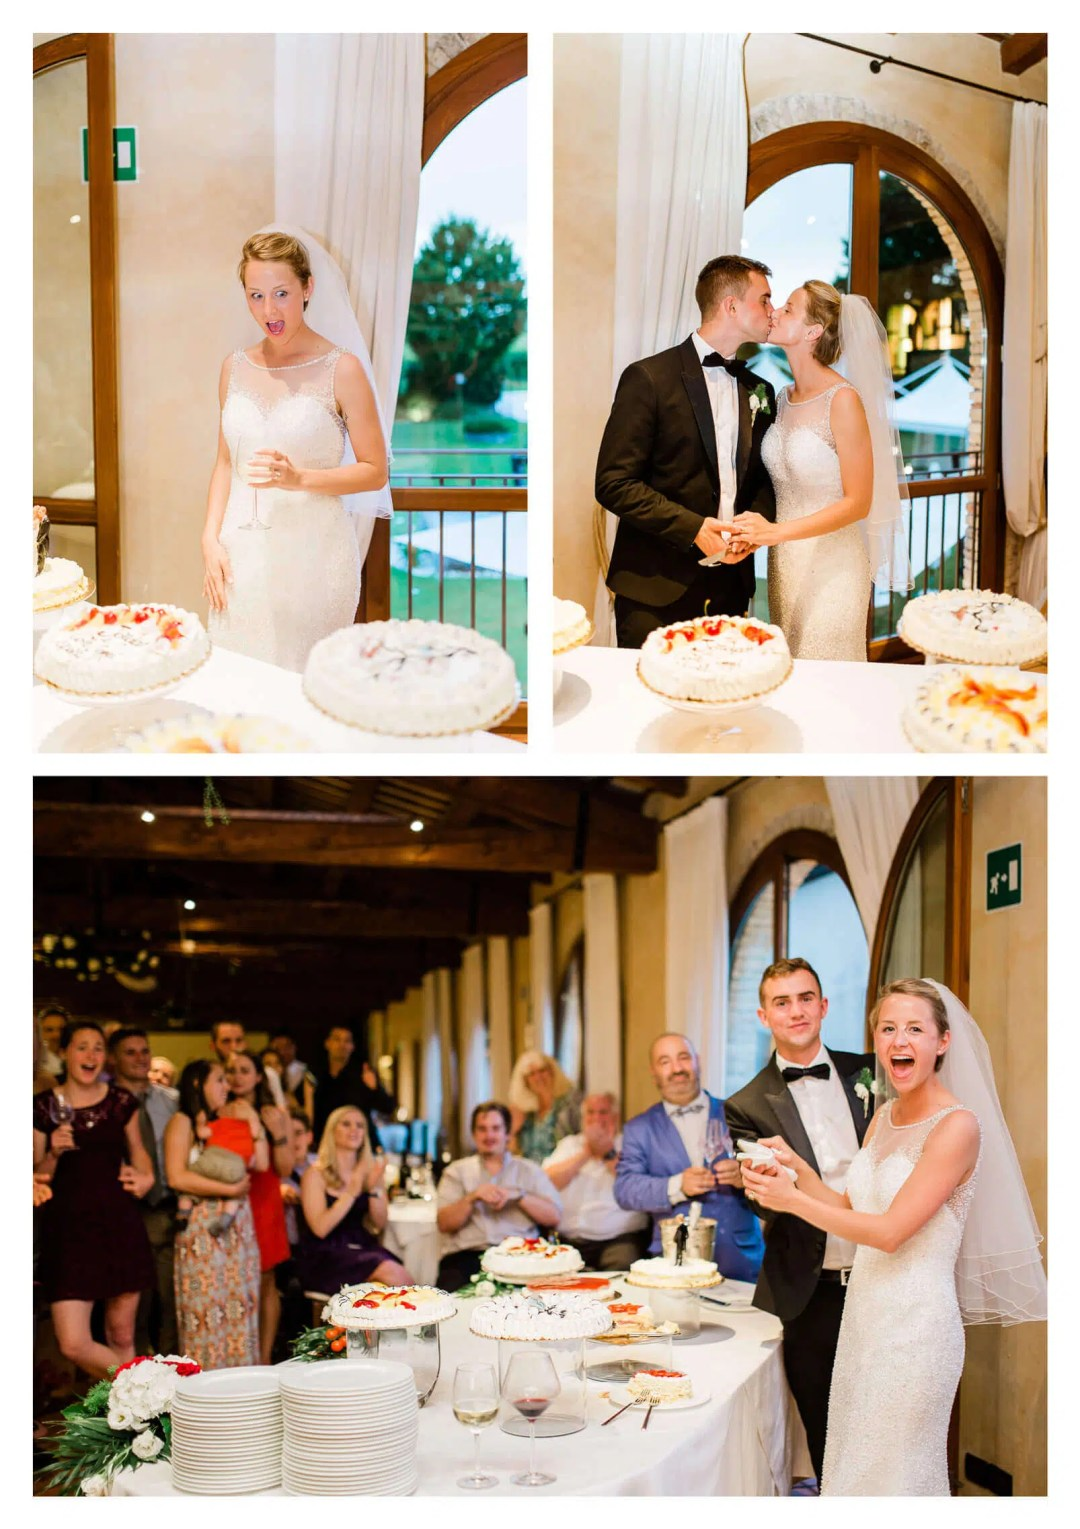 Cake cutting at Fossa Mala wedding | Destination photographer